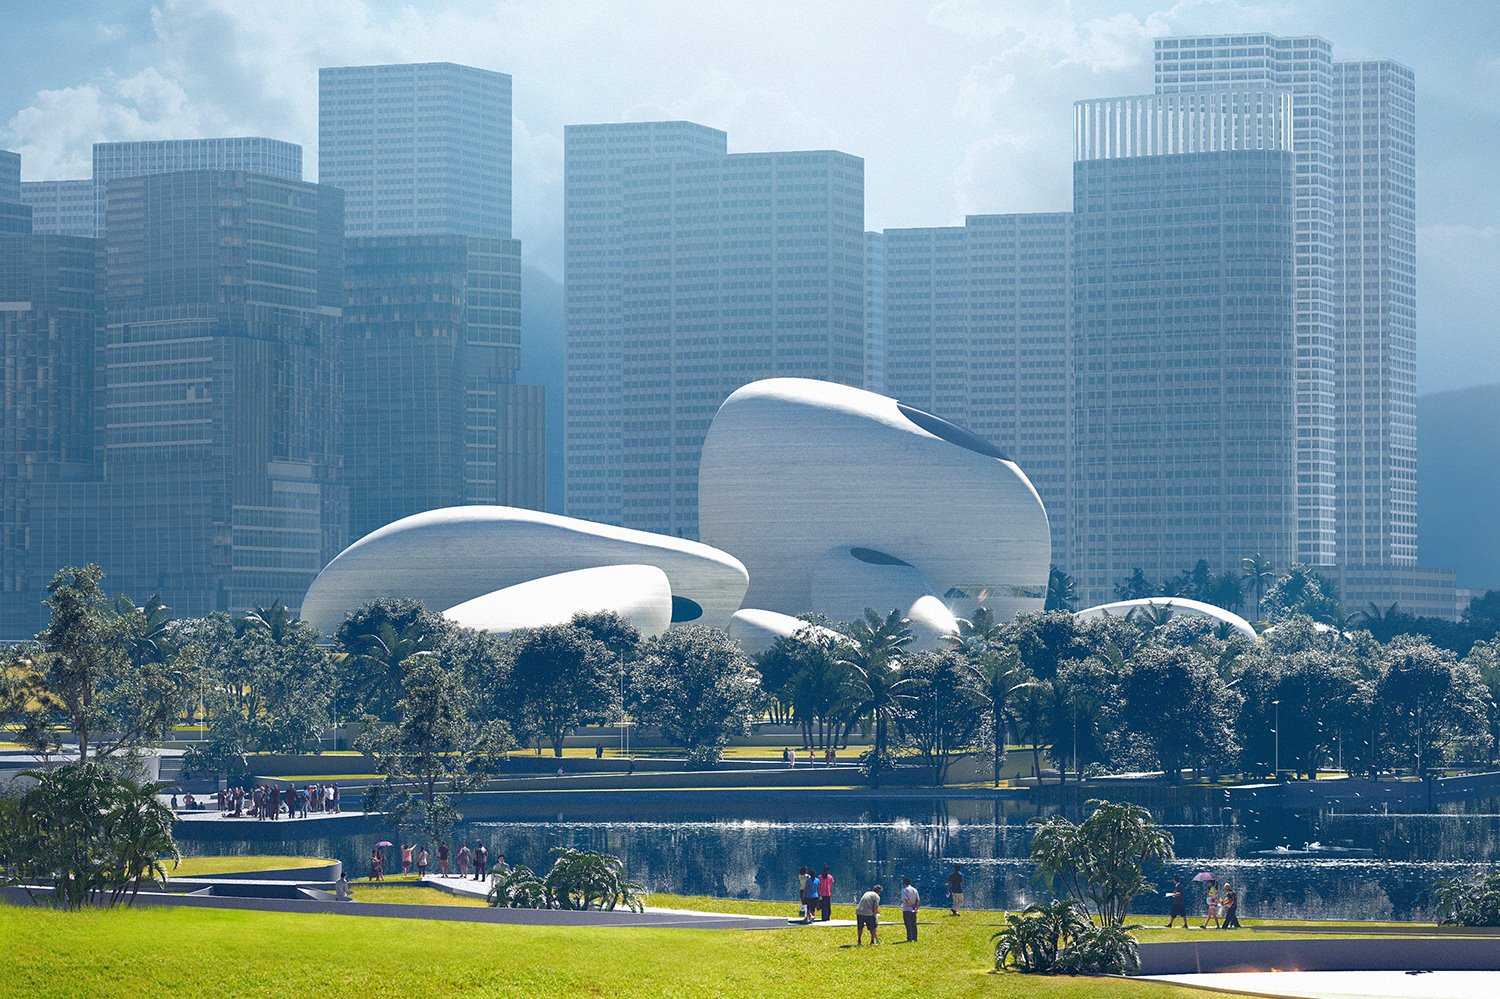 04 MAD Shenzhen Bay Cultural Park by MIR